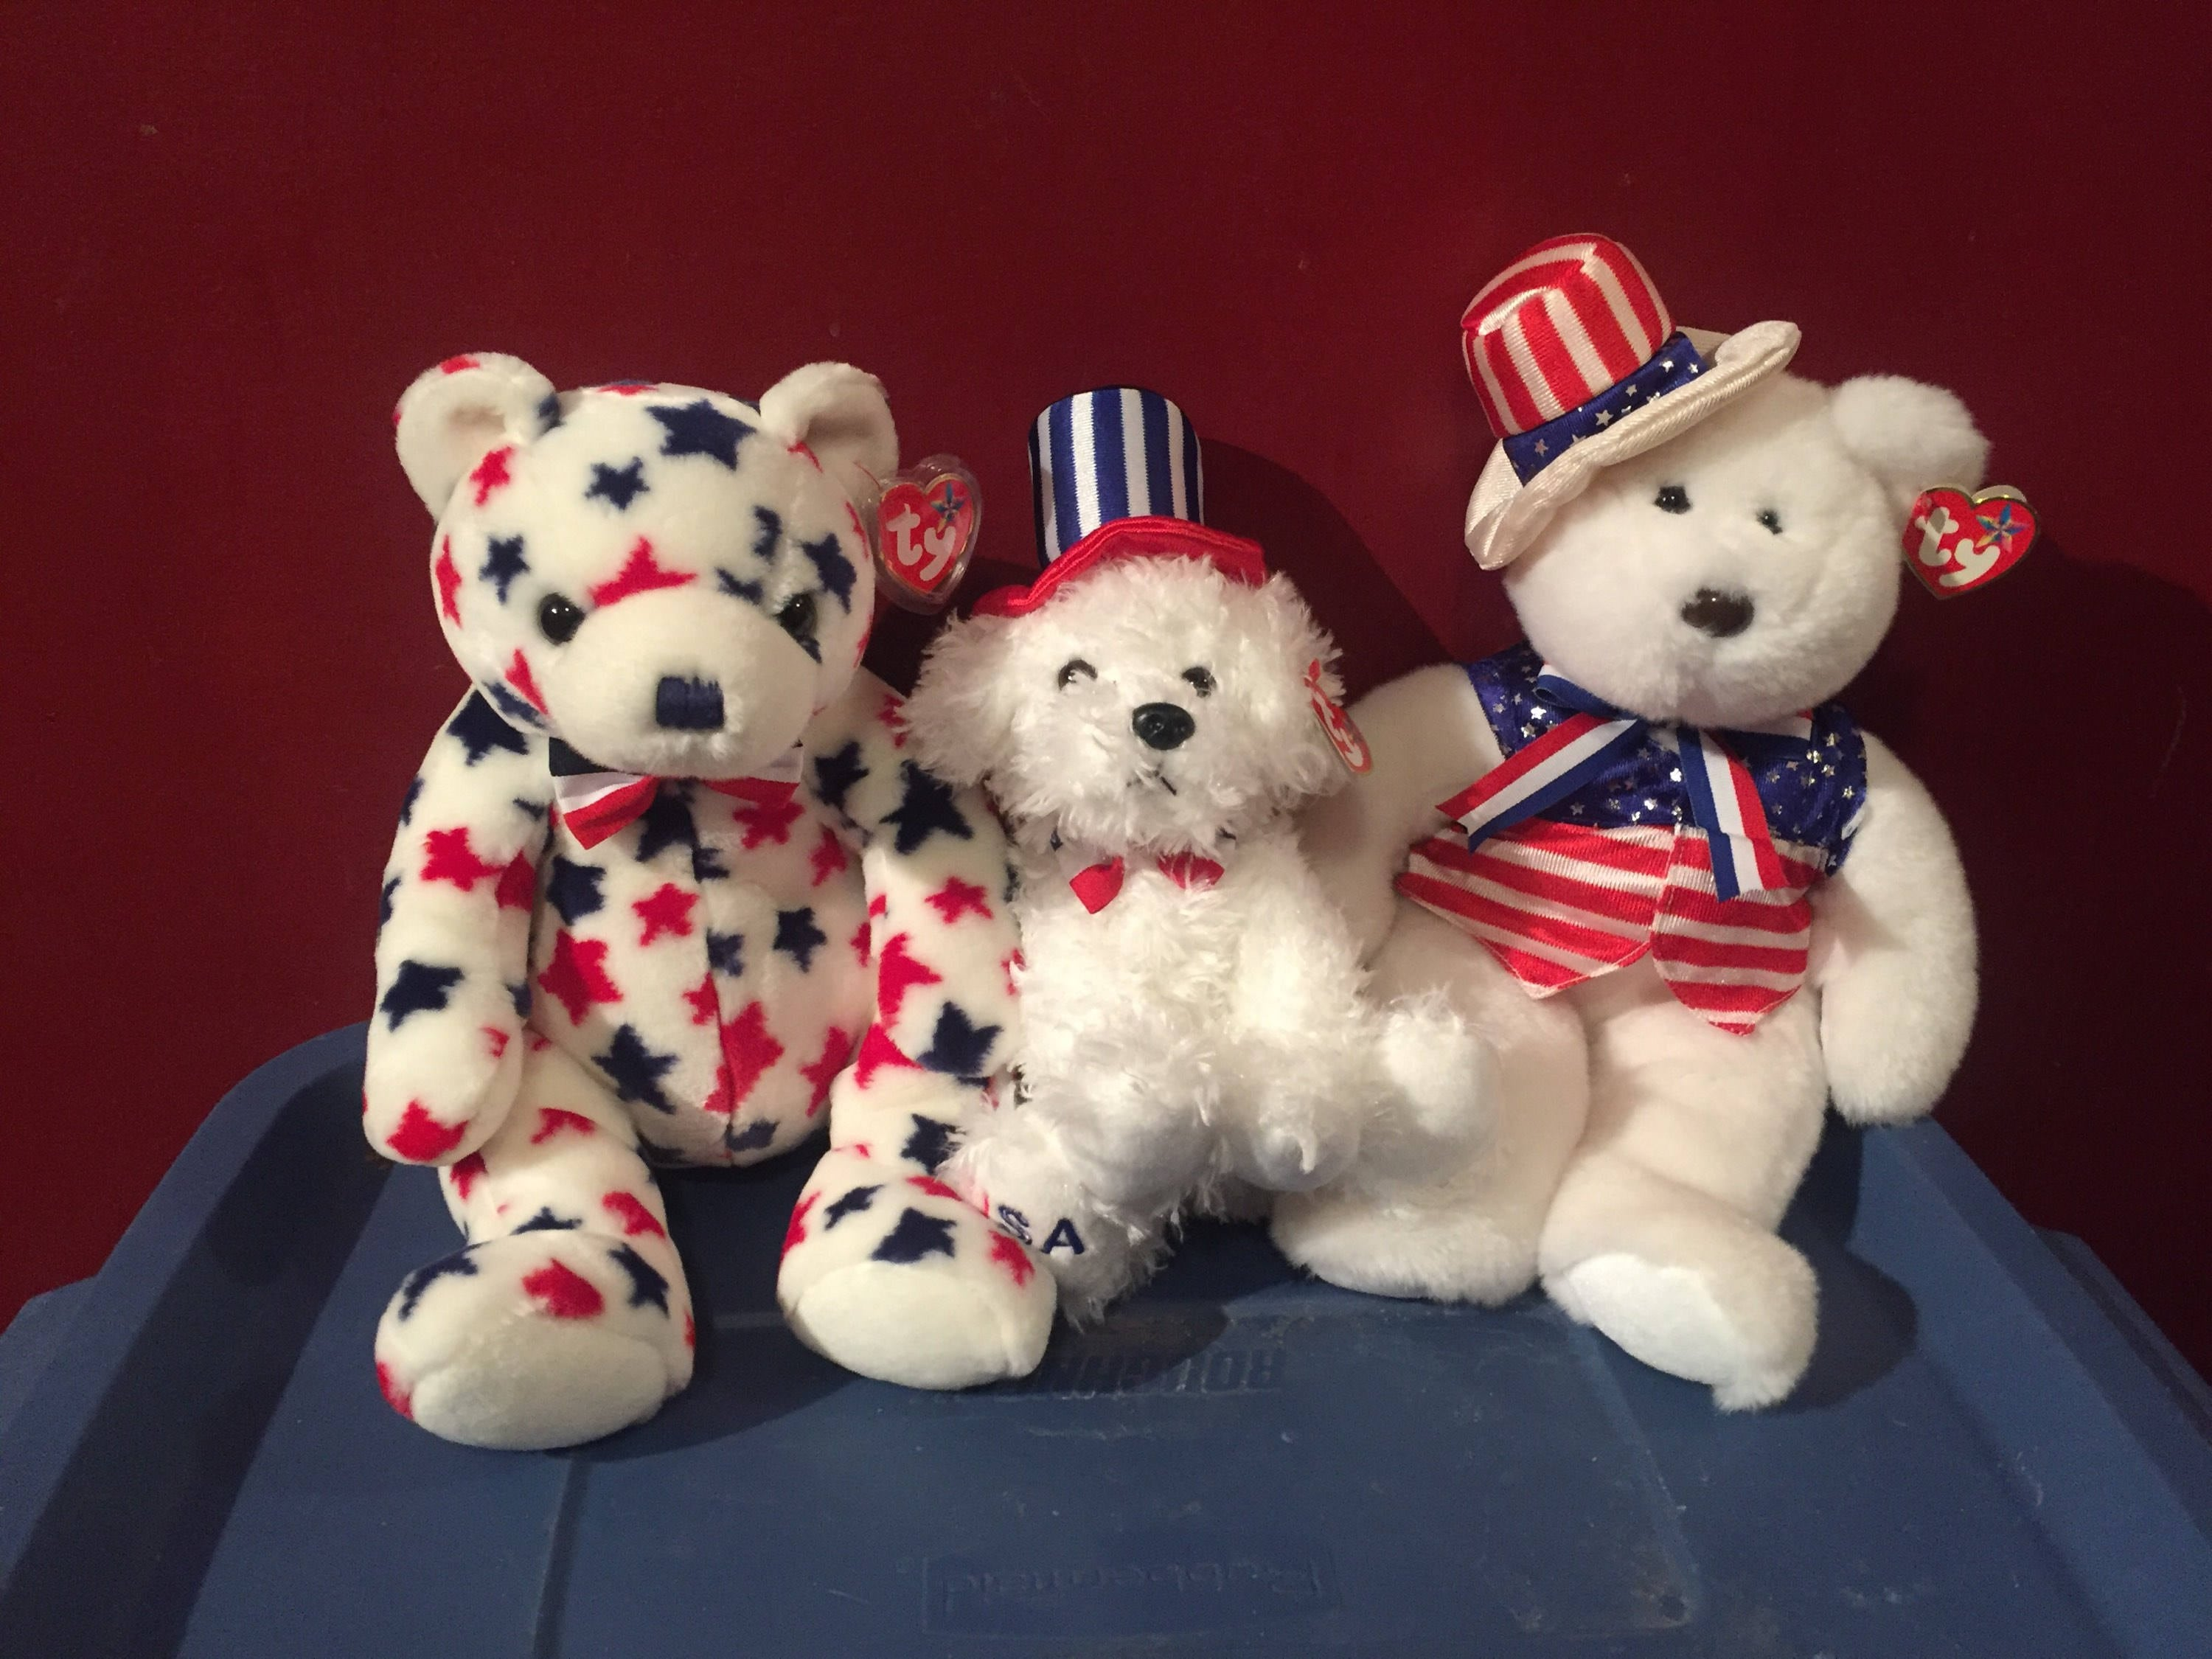 a7984cff51a All American Trio Beanie Buddies Beanie Babies TY USA Patriotic Fourth of  July Independence Day Murica Uncle Sam Collectibles Cute